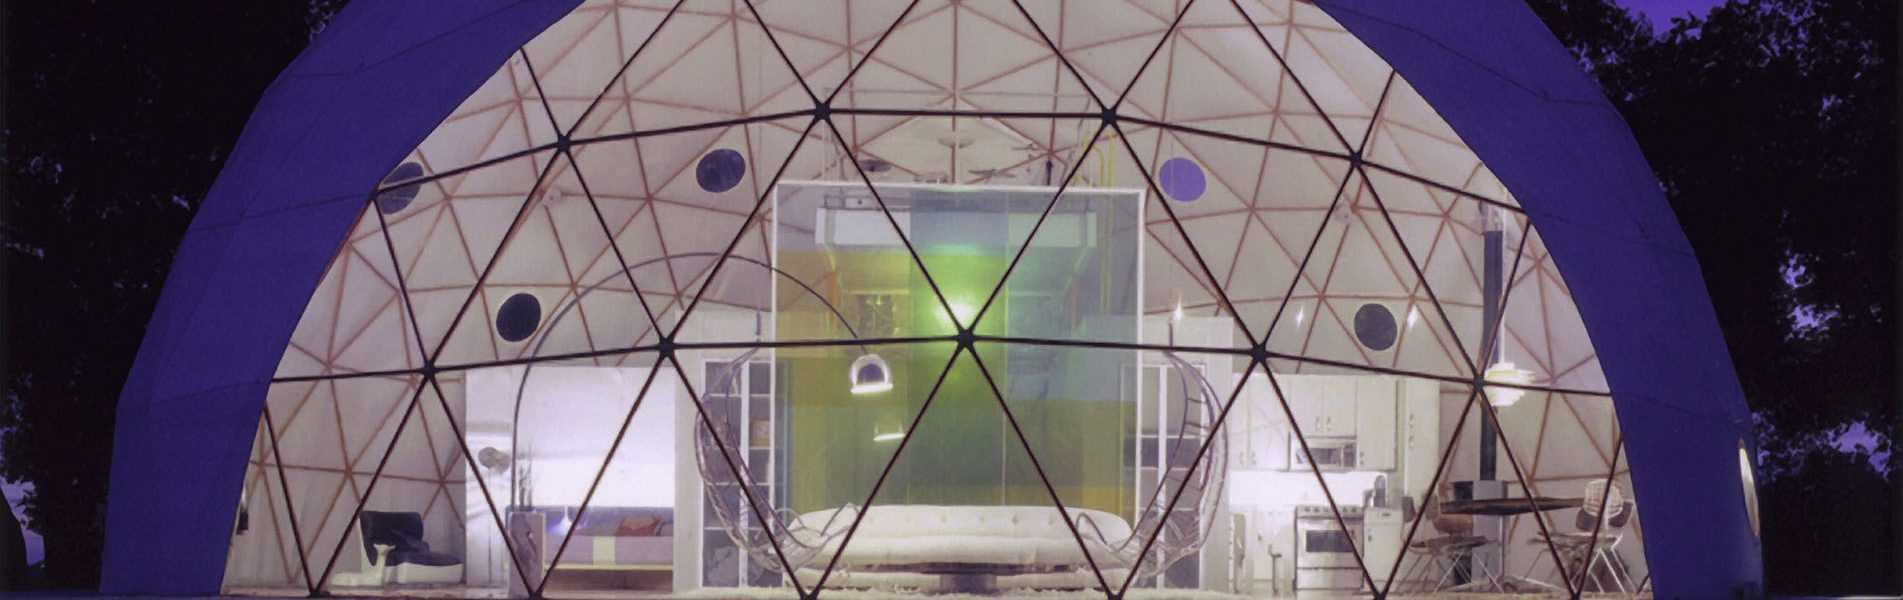 44ft Geodesic Dome Home